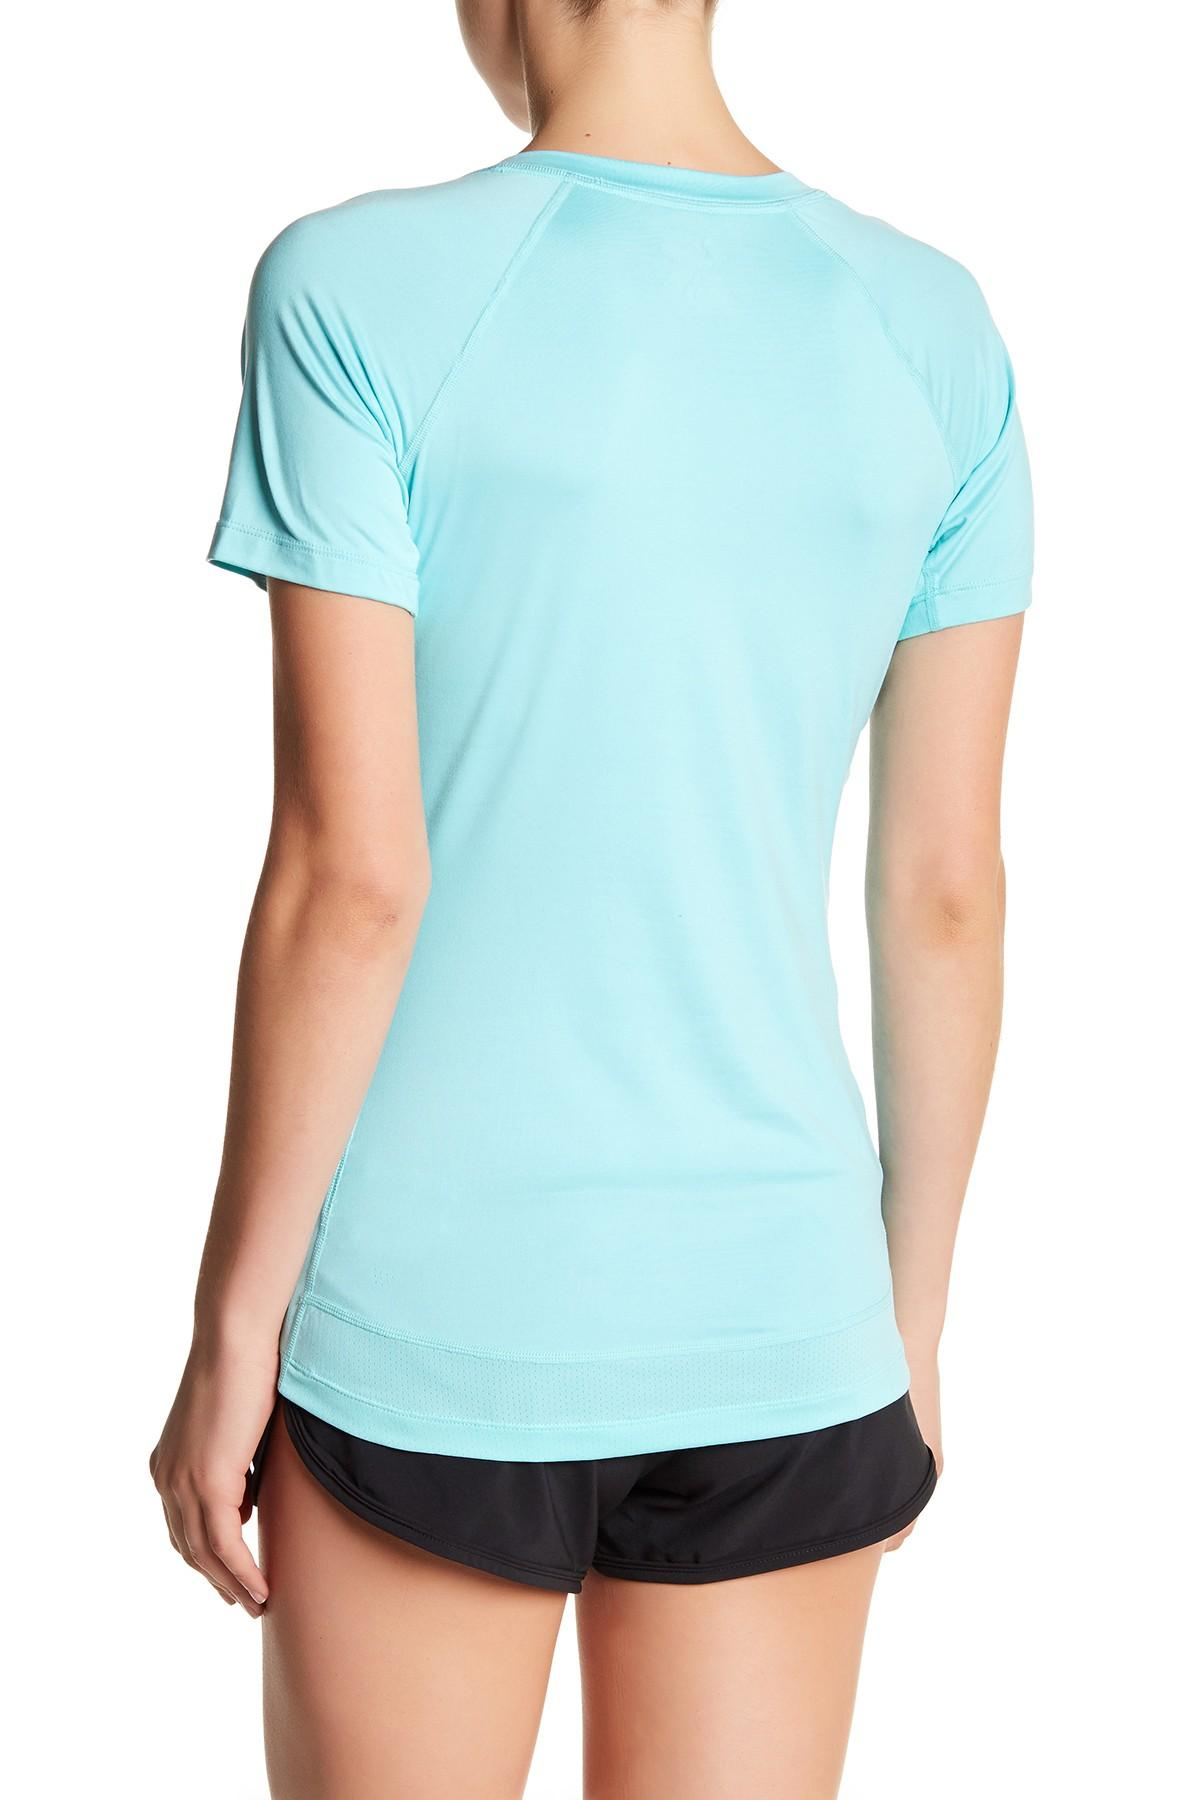 Asics-NEW-Solid-Hue-Women-039-s-V-Neck-Performance-ASX-Dry-T-Shirt-Top-38 thumbnail 18